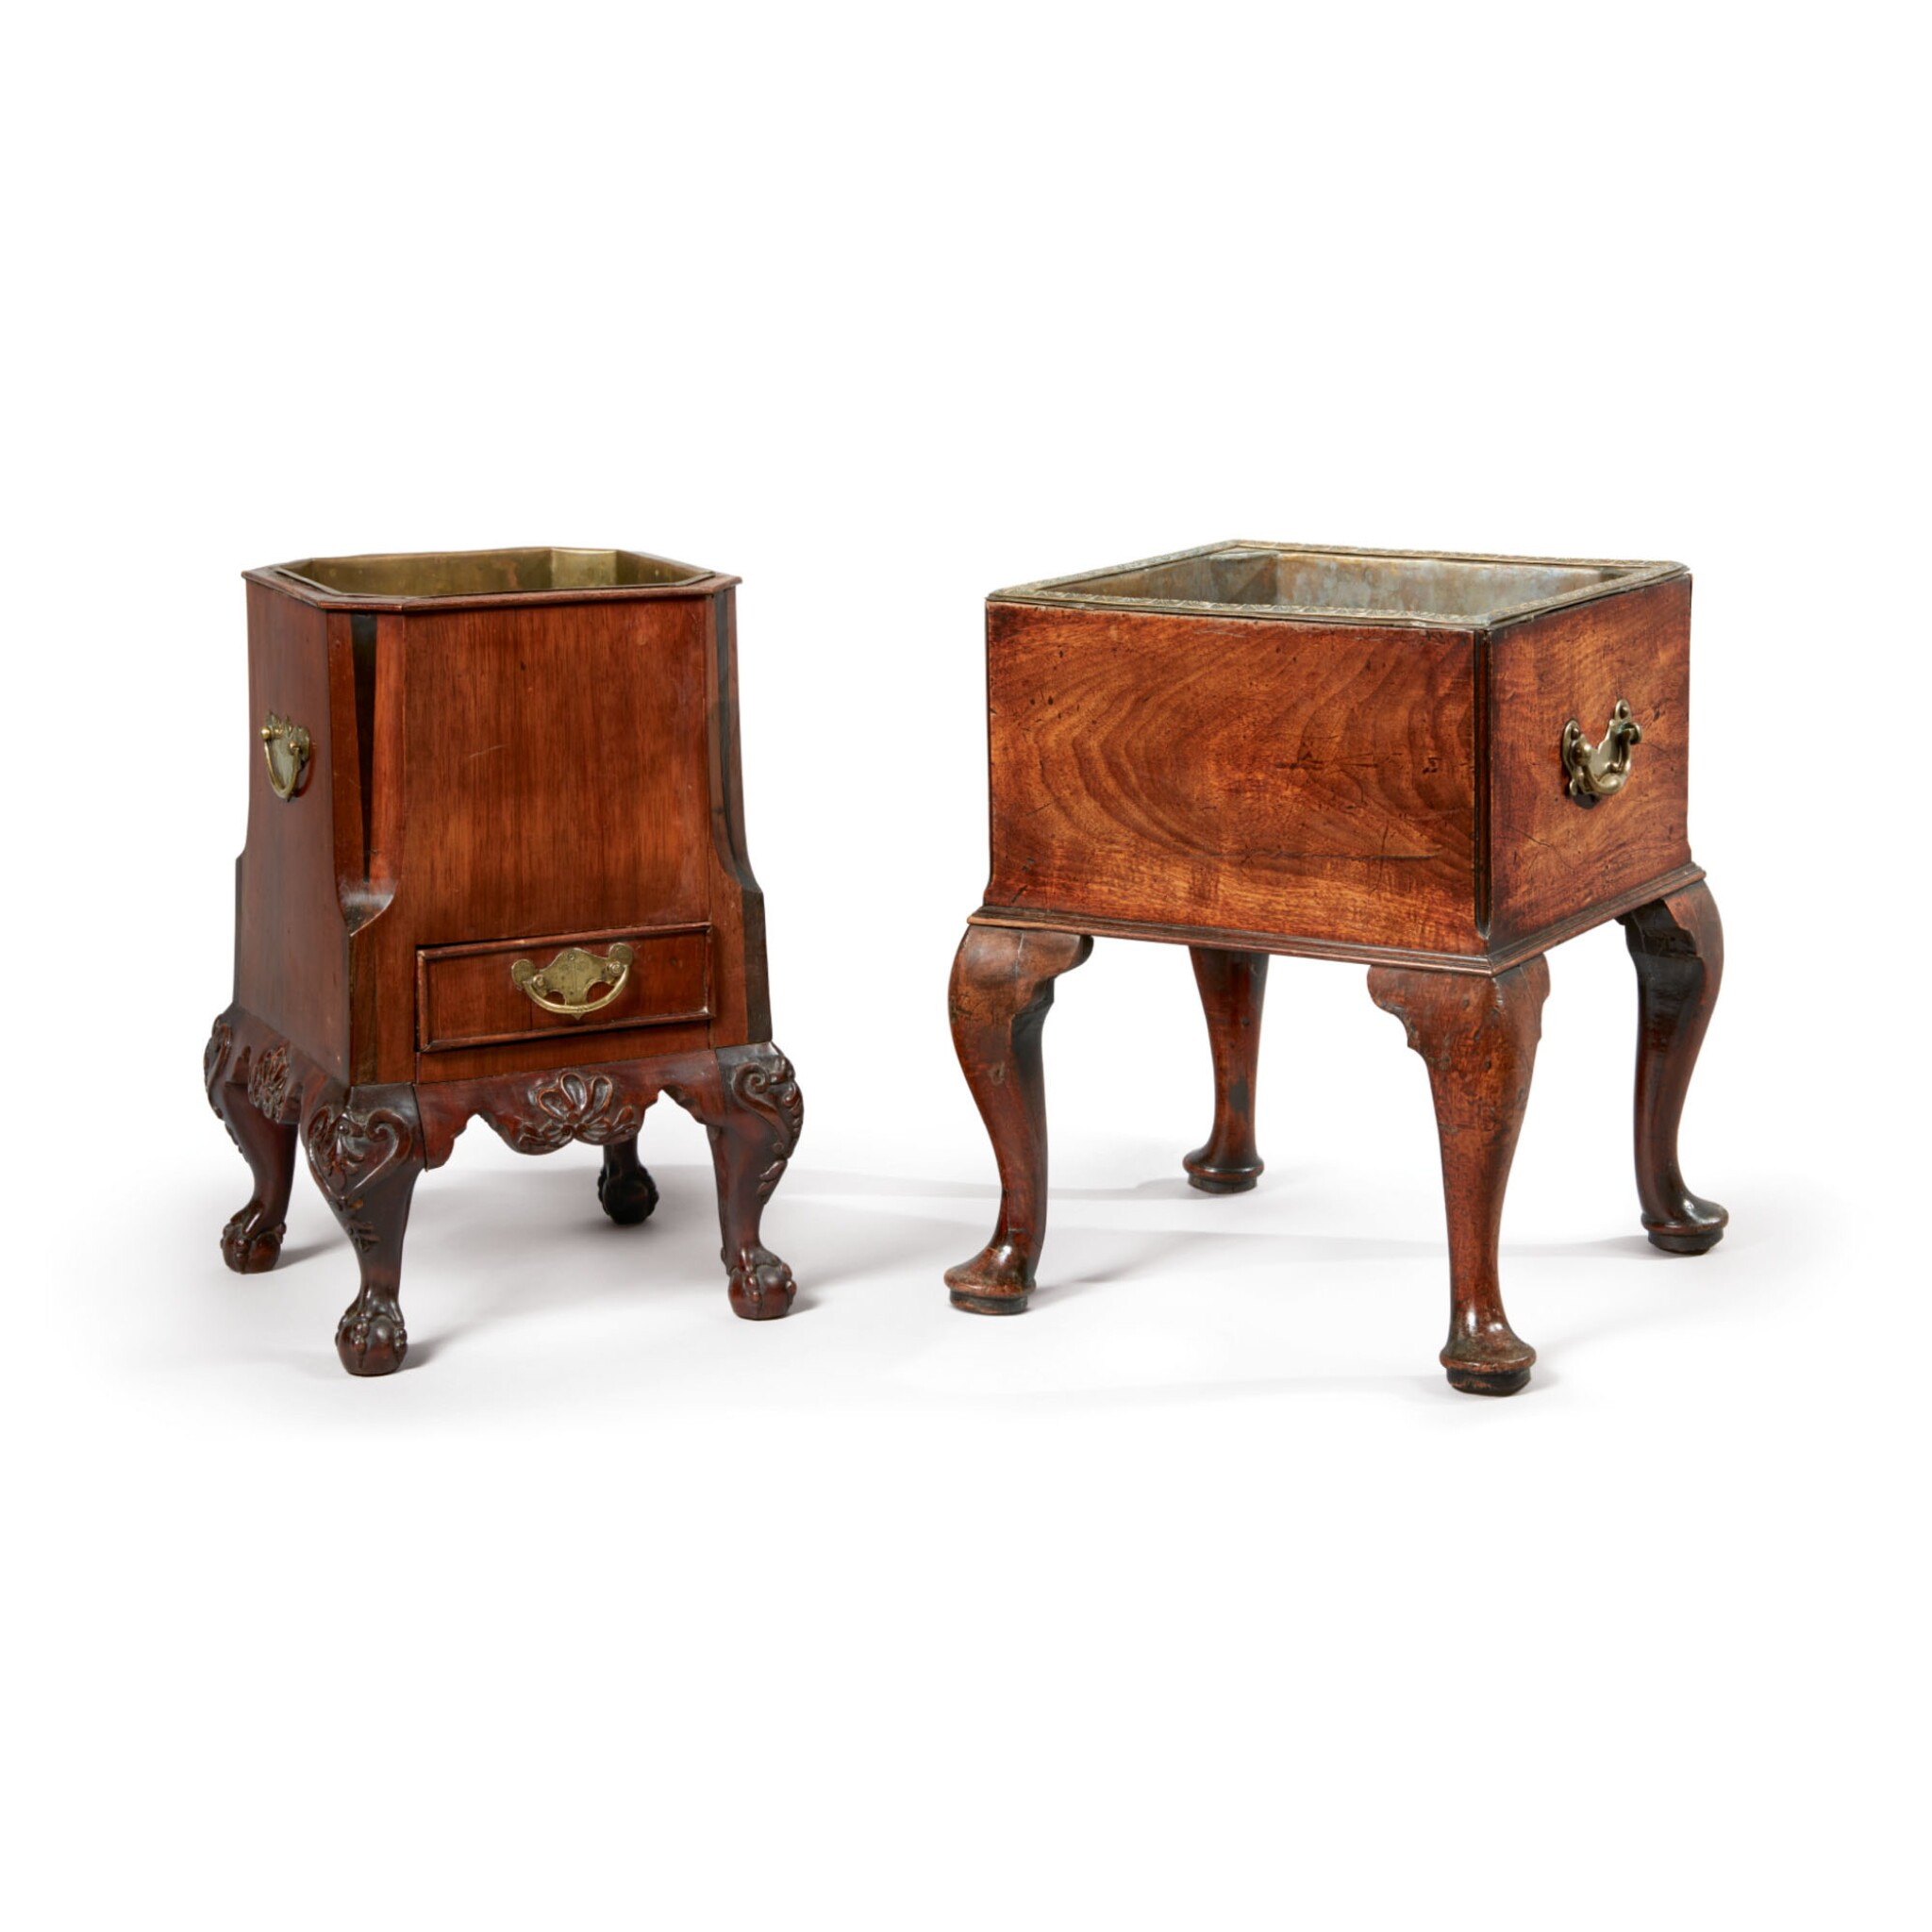 View 1 of Lot 520. A GEORGE II MAHOGANY JARDINIÈRE, 18TH CENTURY, TOGETHER WITH AN ANGLO-DUTCH MAHOGANY JARDINIÈRE, 19TH CENTURY.